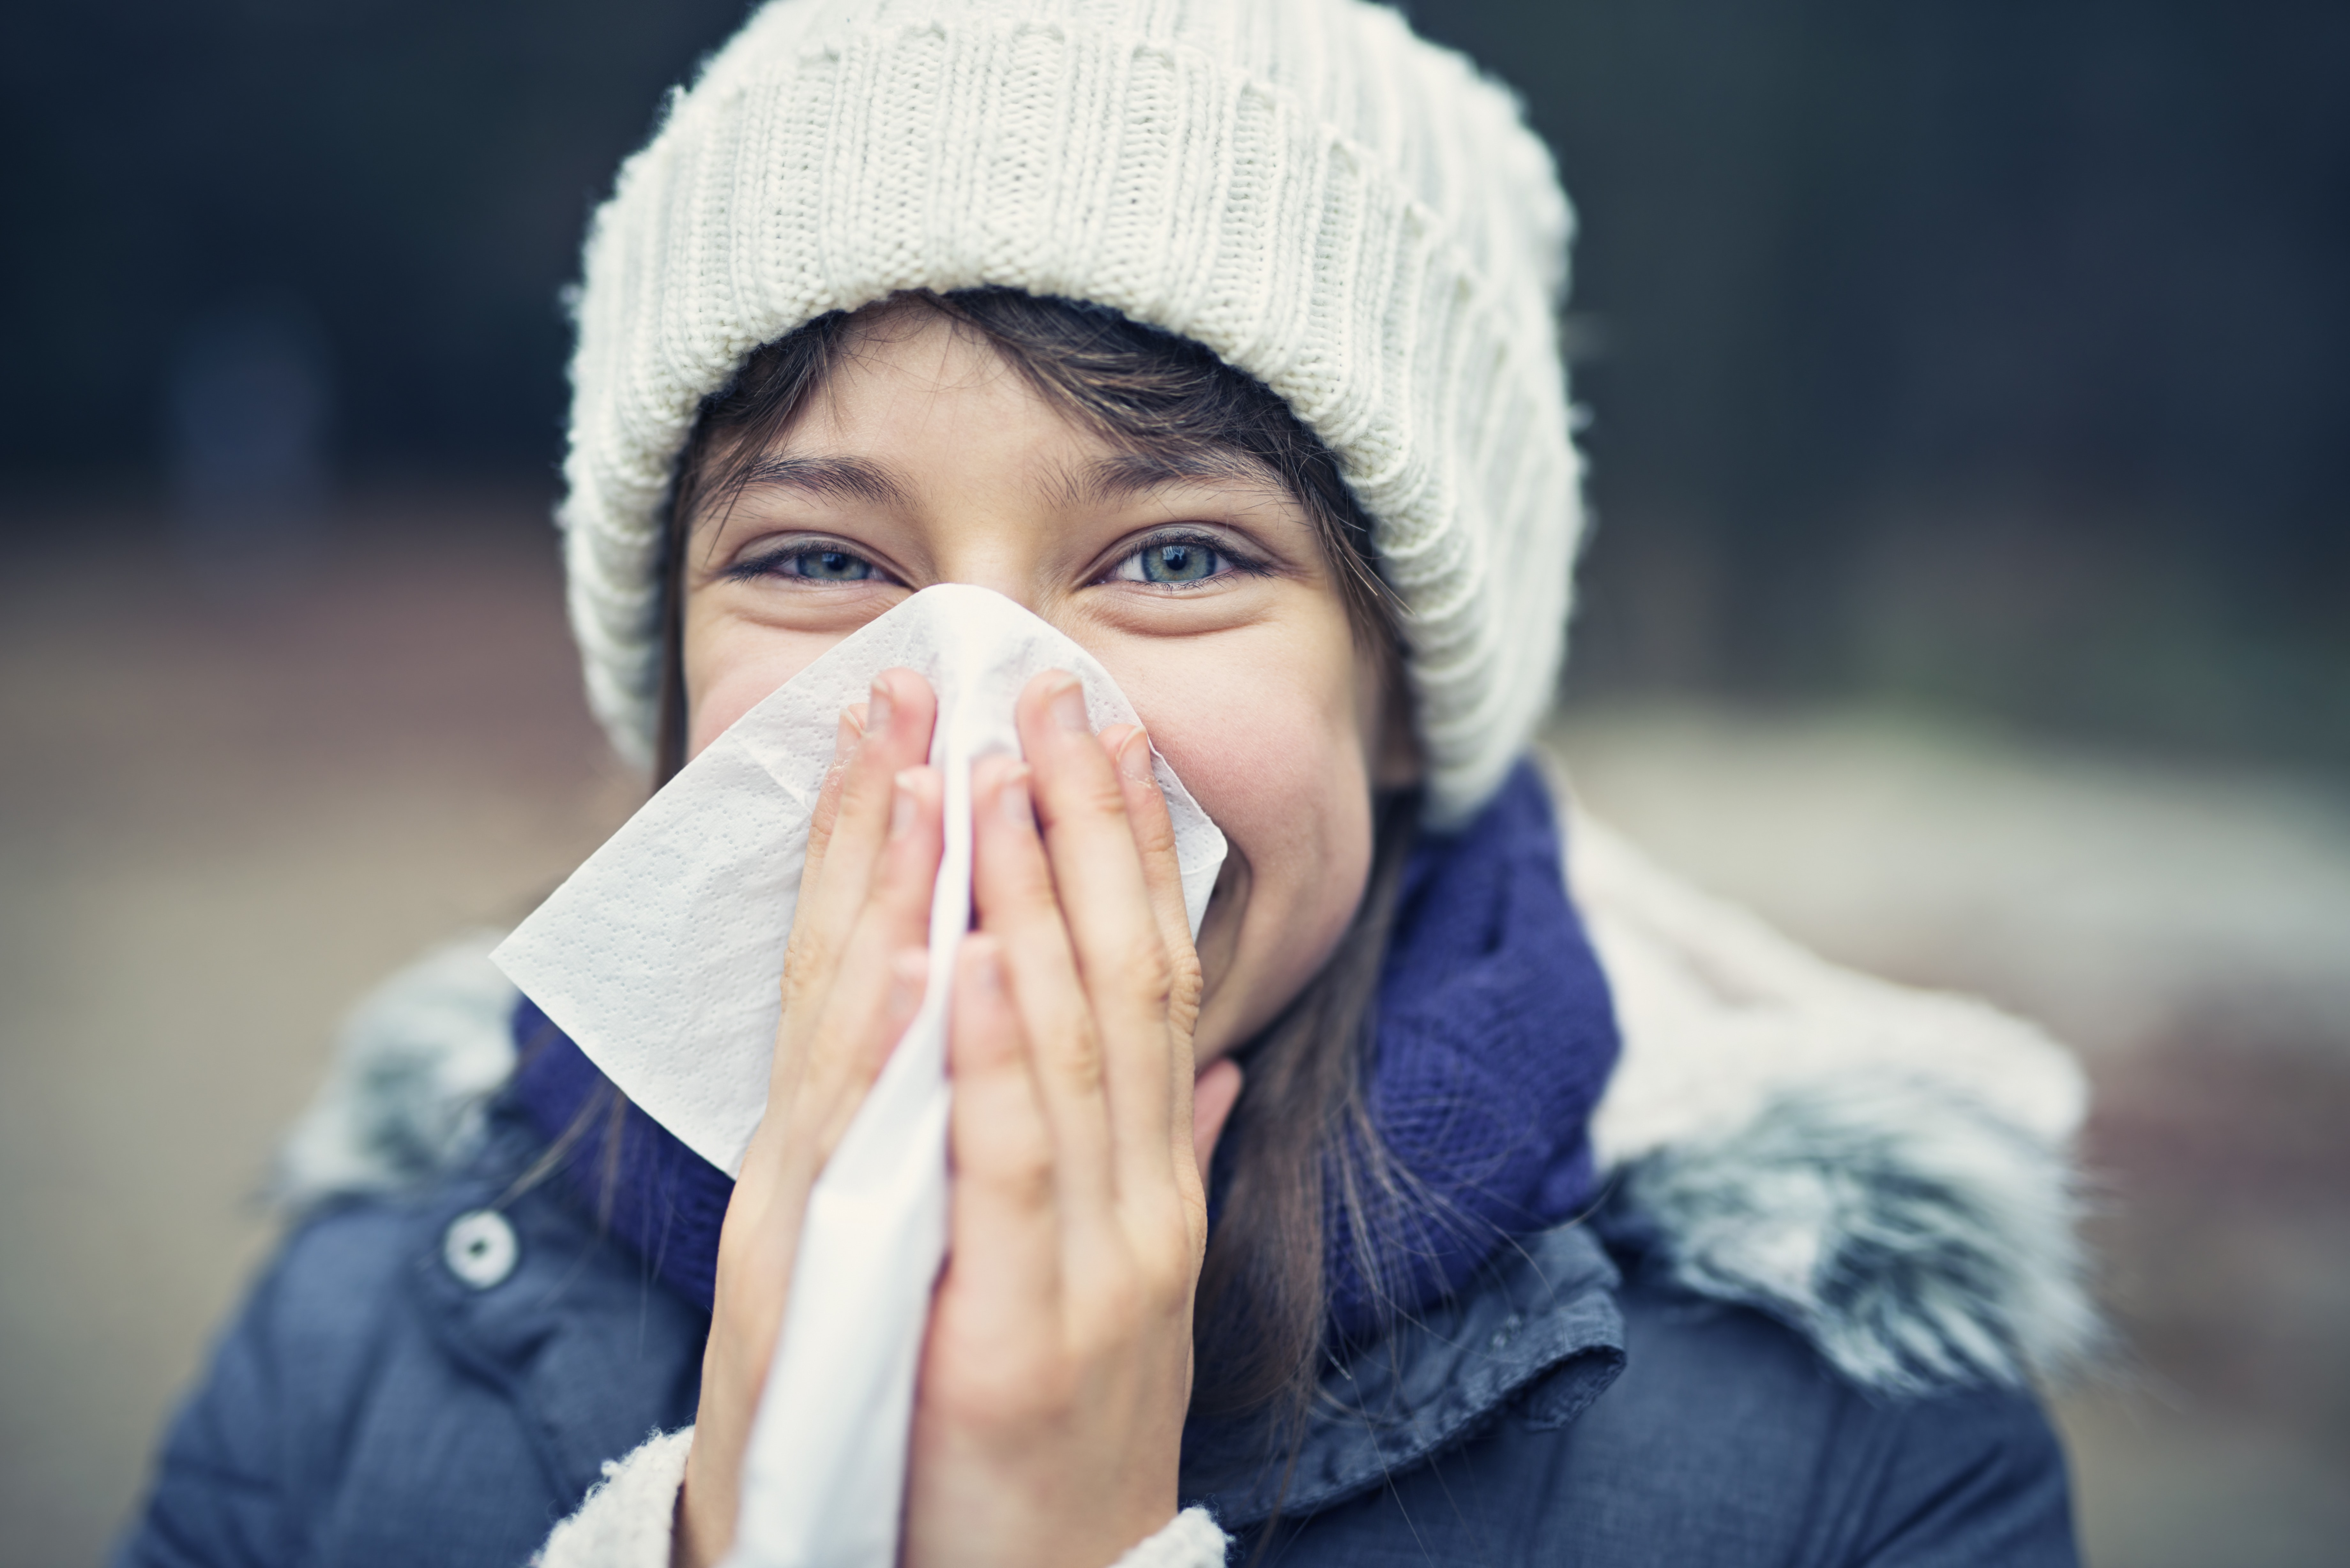 cold, flu, under the weawther, how long does a flu last, common cold, common cold symptoms, common cold treatment, common cold stages